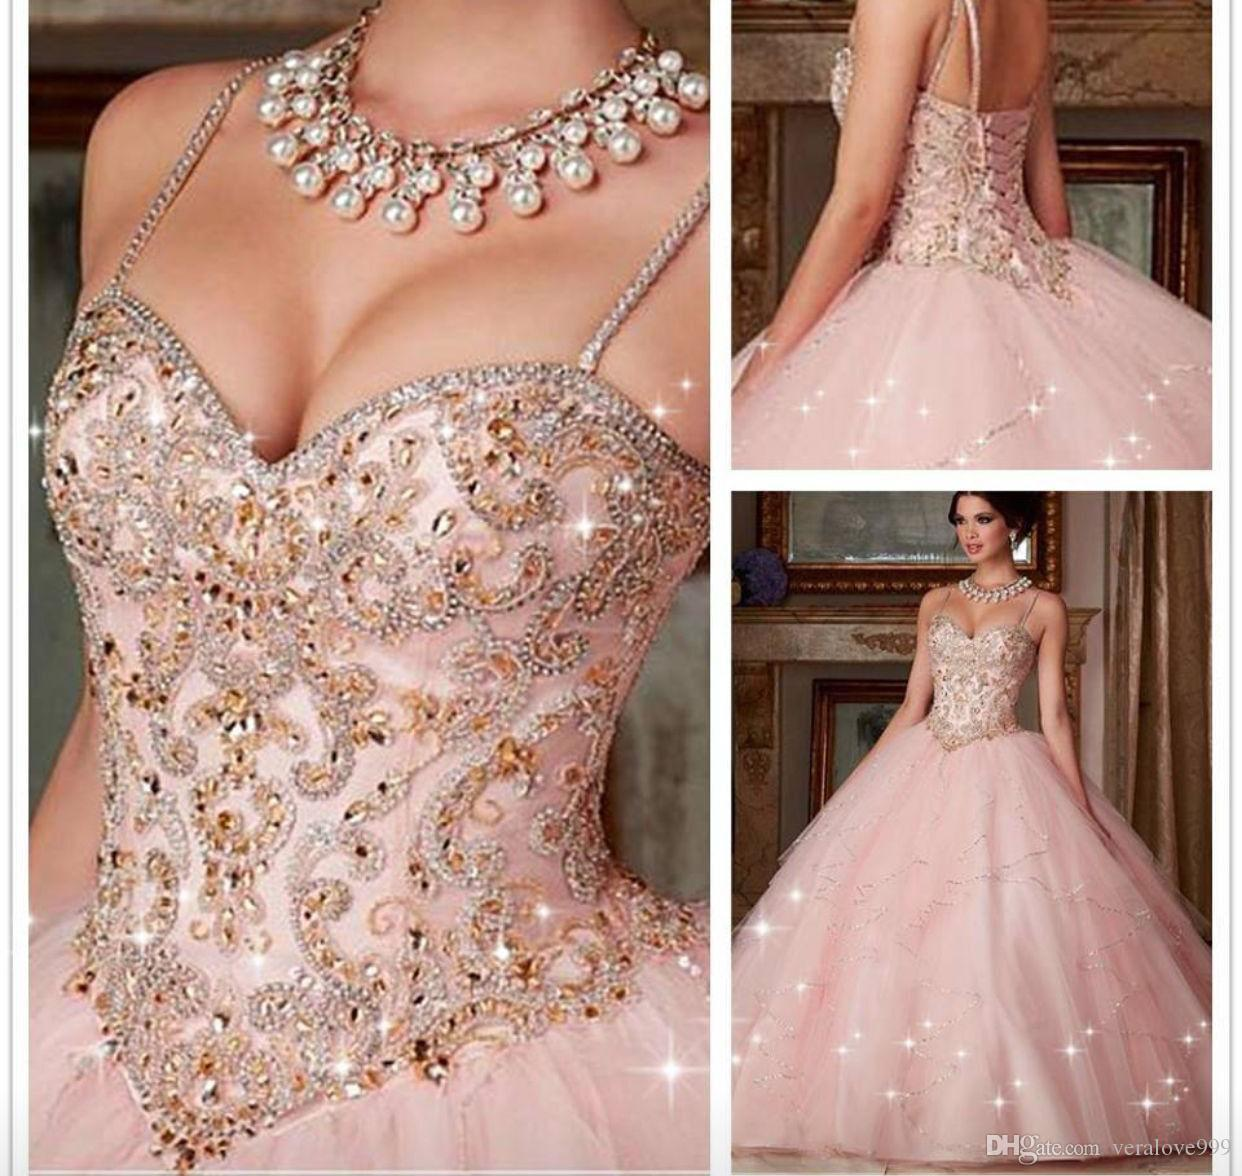 Beaded Spaghetti Straps Quinceanera Dresses with Beading New Pink Crystal Ball Gown Dresses For 15 16 Years Prom Party Dress